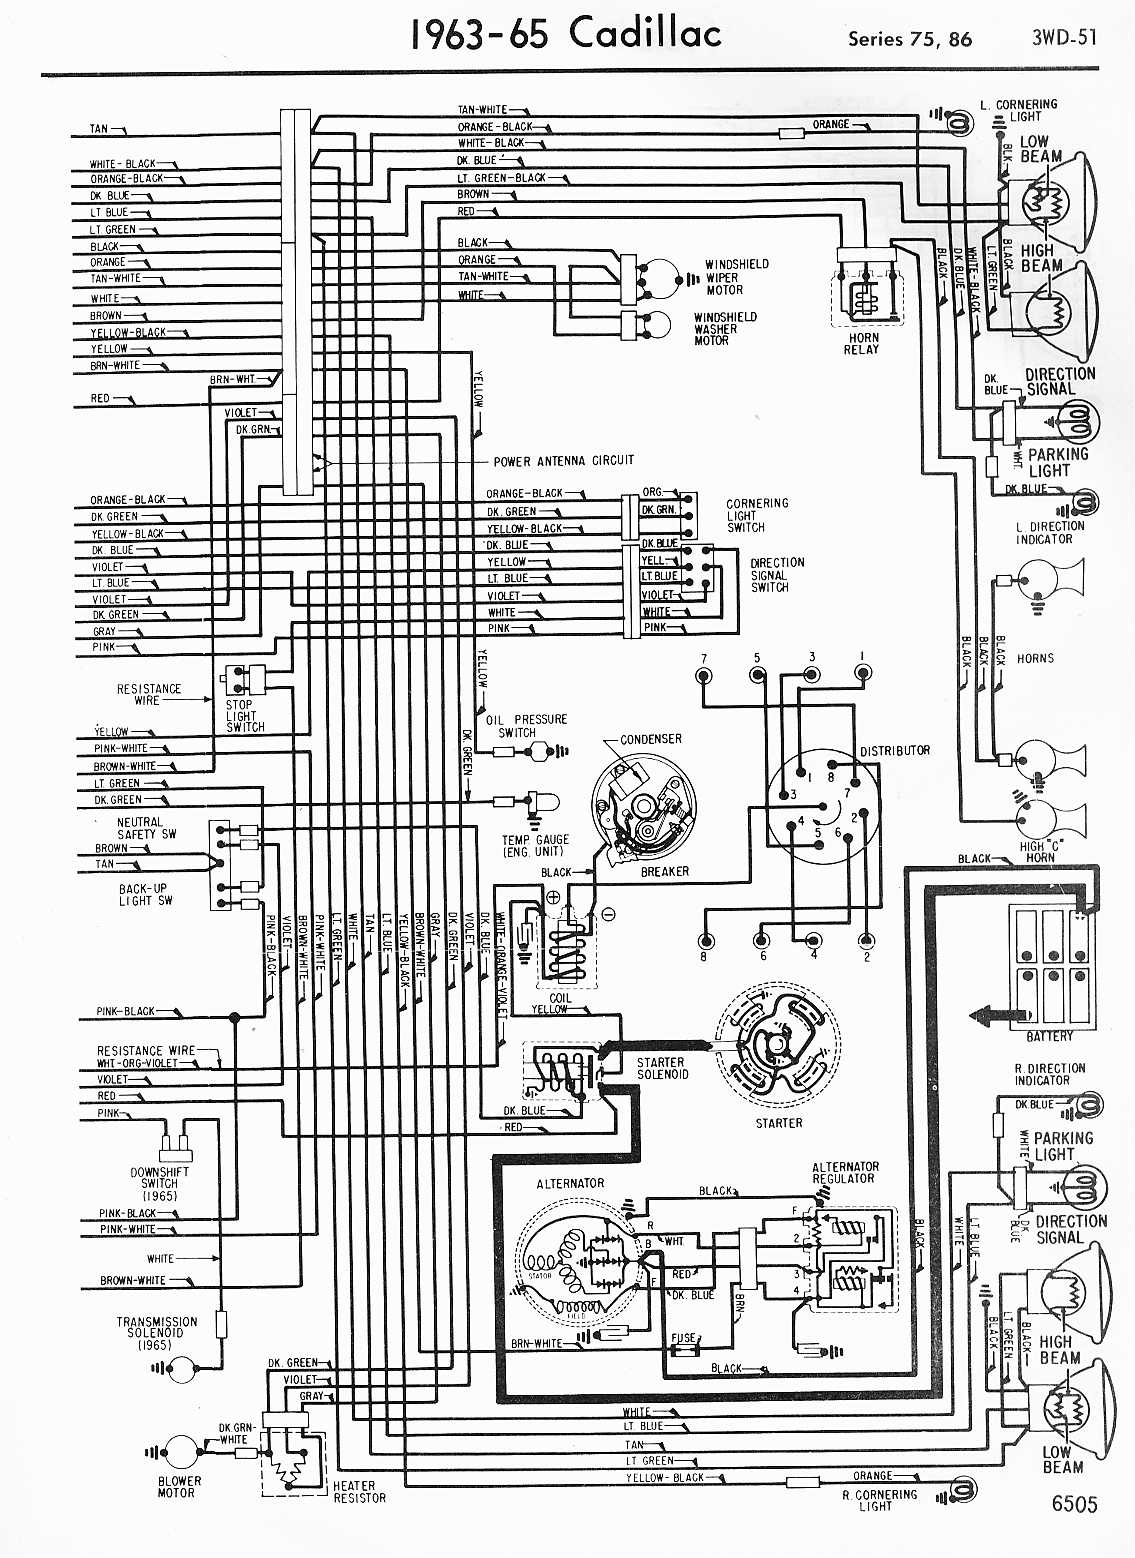 66 cadillac wiring diagram schematic wiring diagram schematics